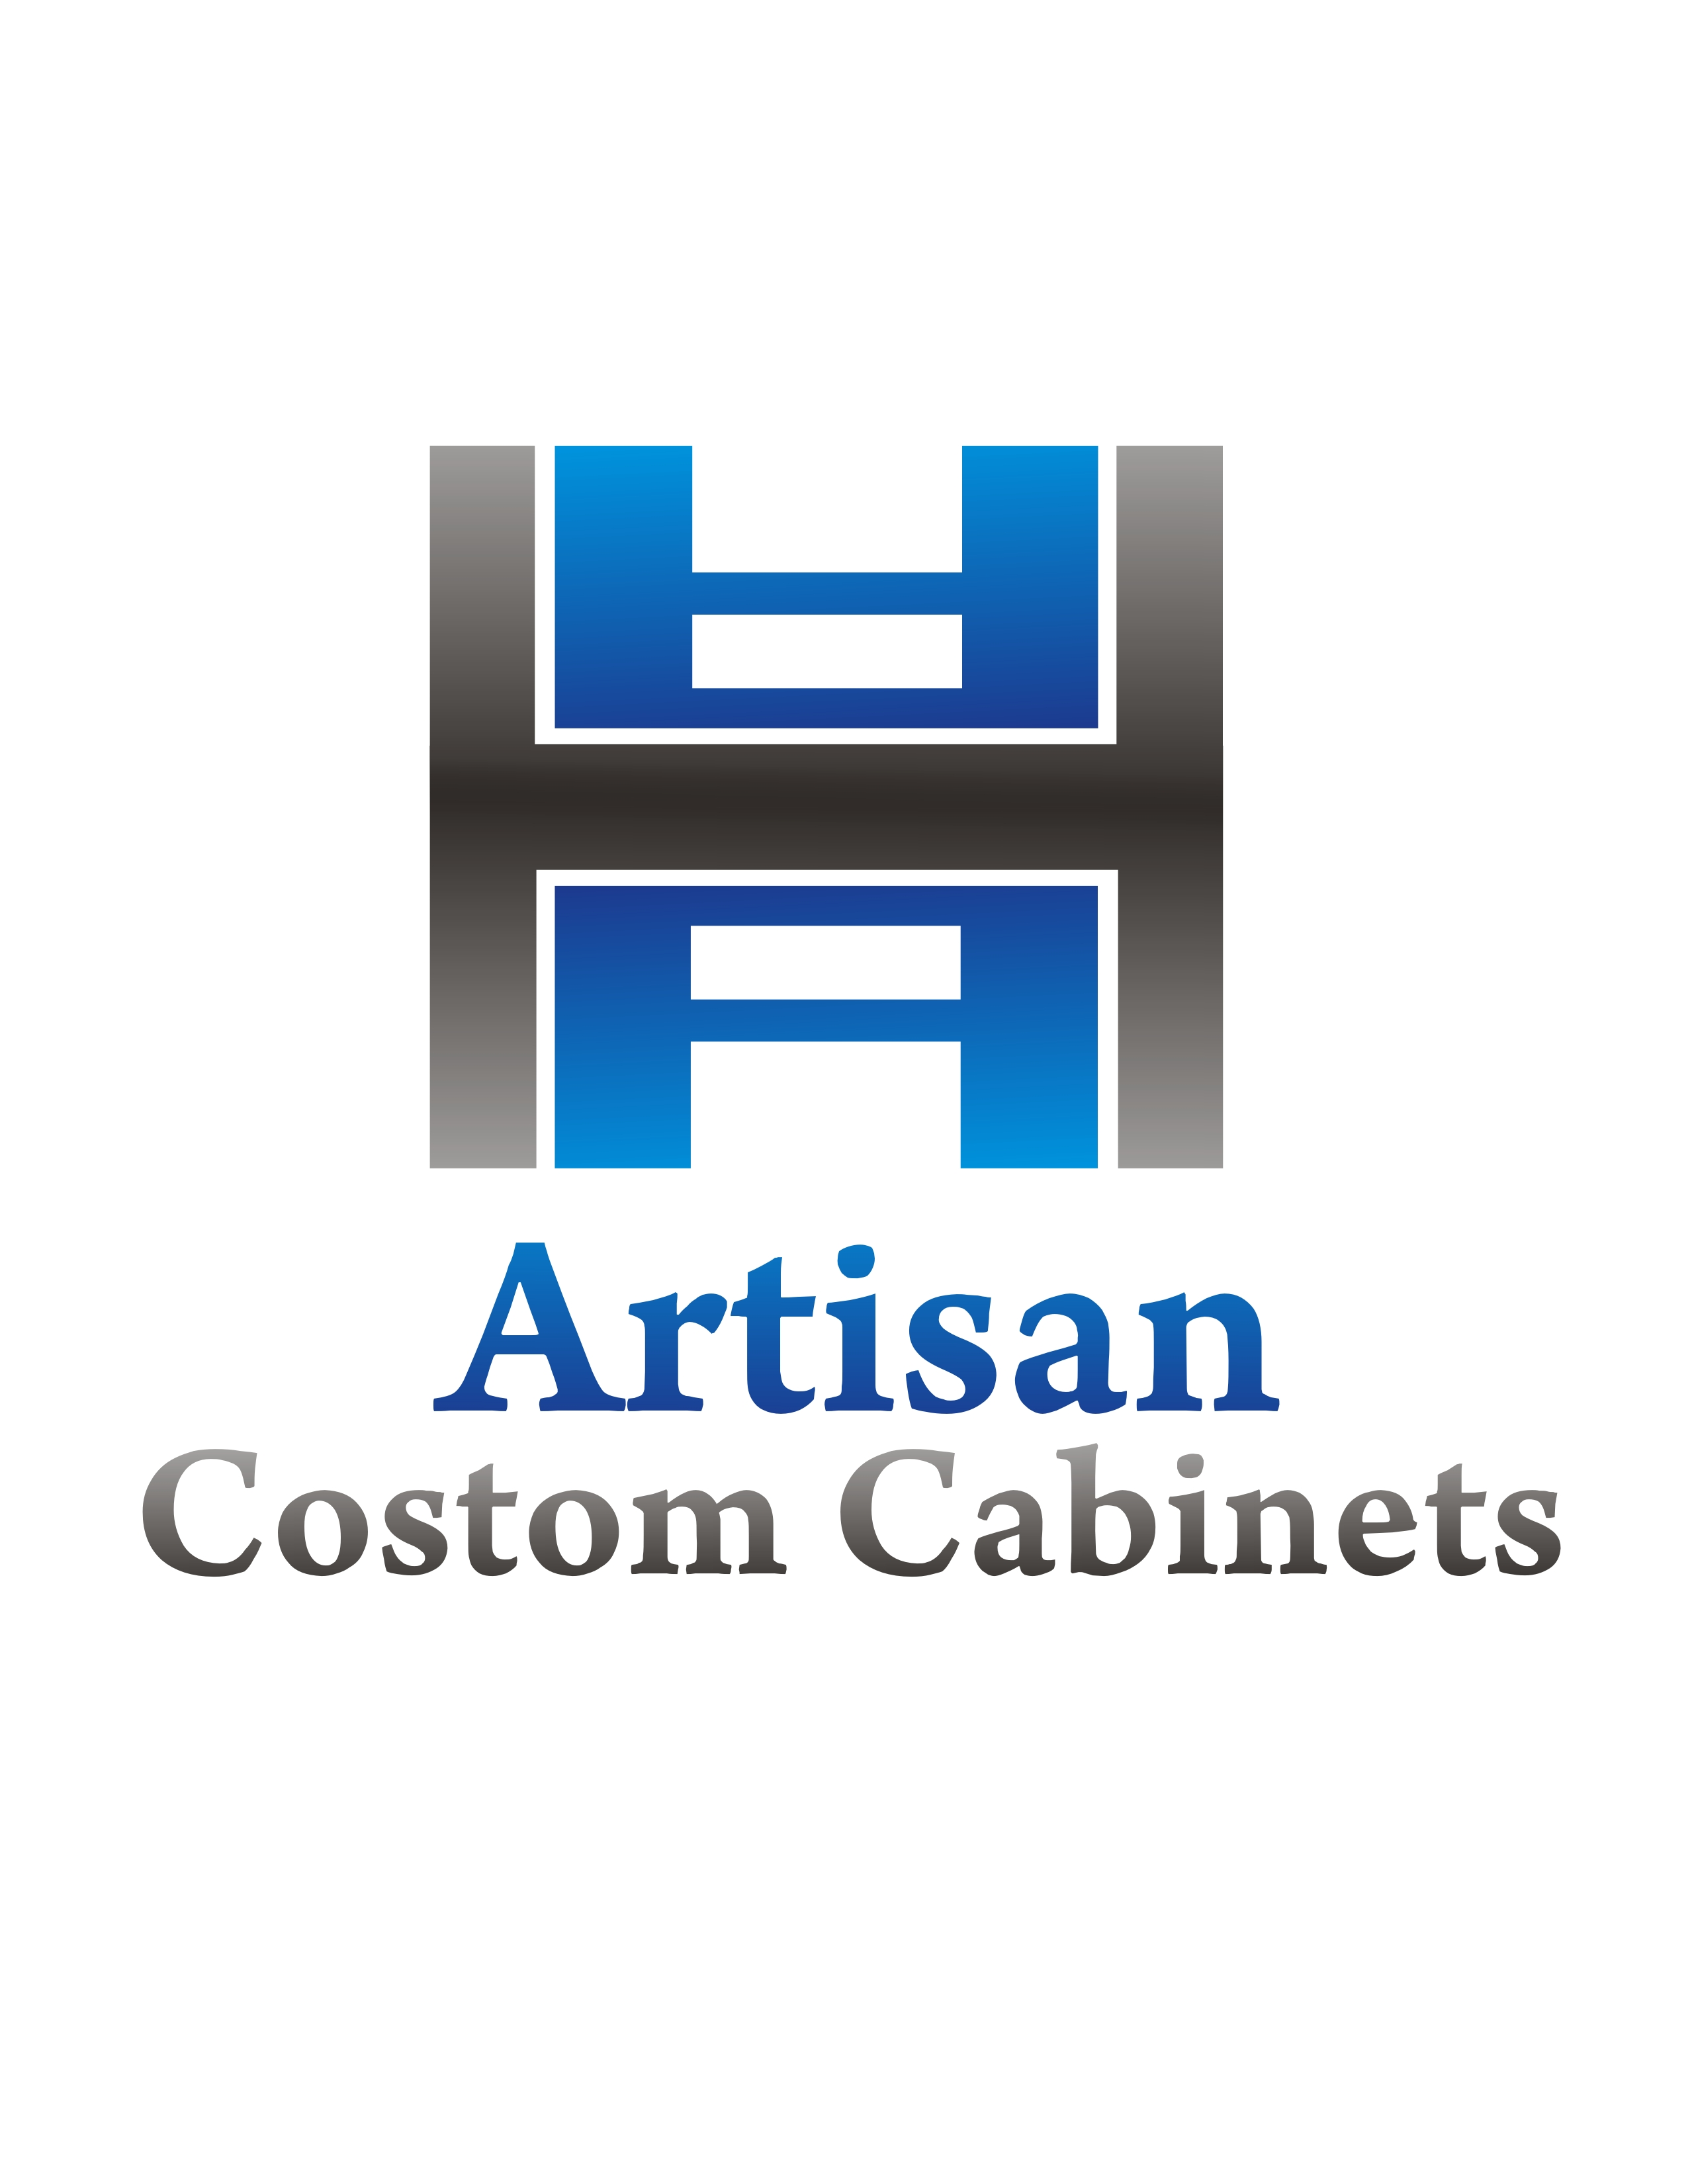 Logo Design by Private User - Entry No. 21 in the Logo Design Contest Creative Logo Design for Artisan Custom Cabinets.